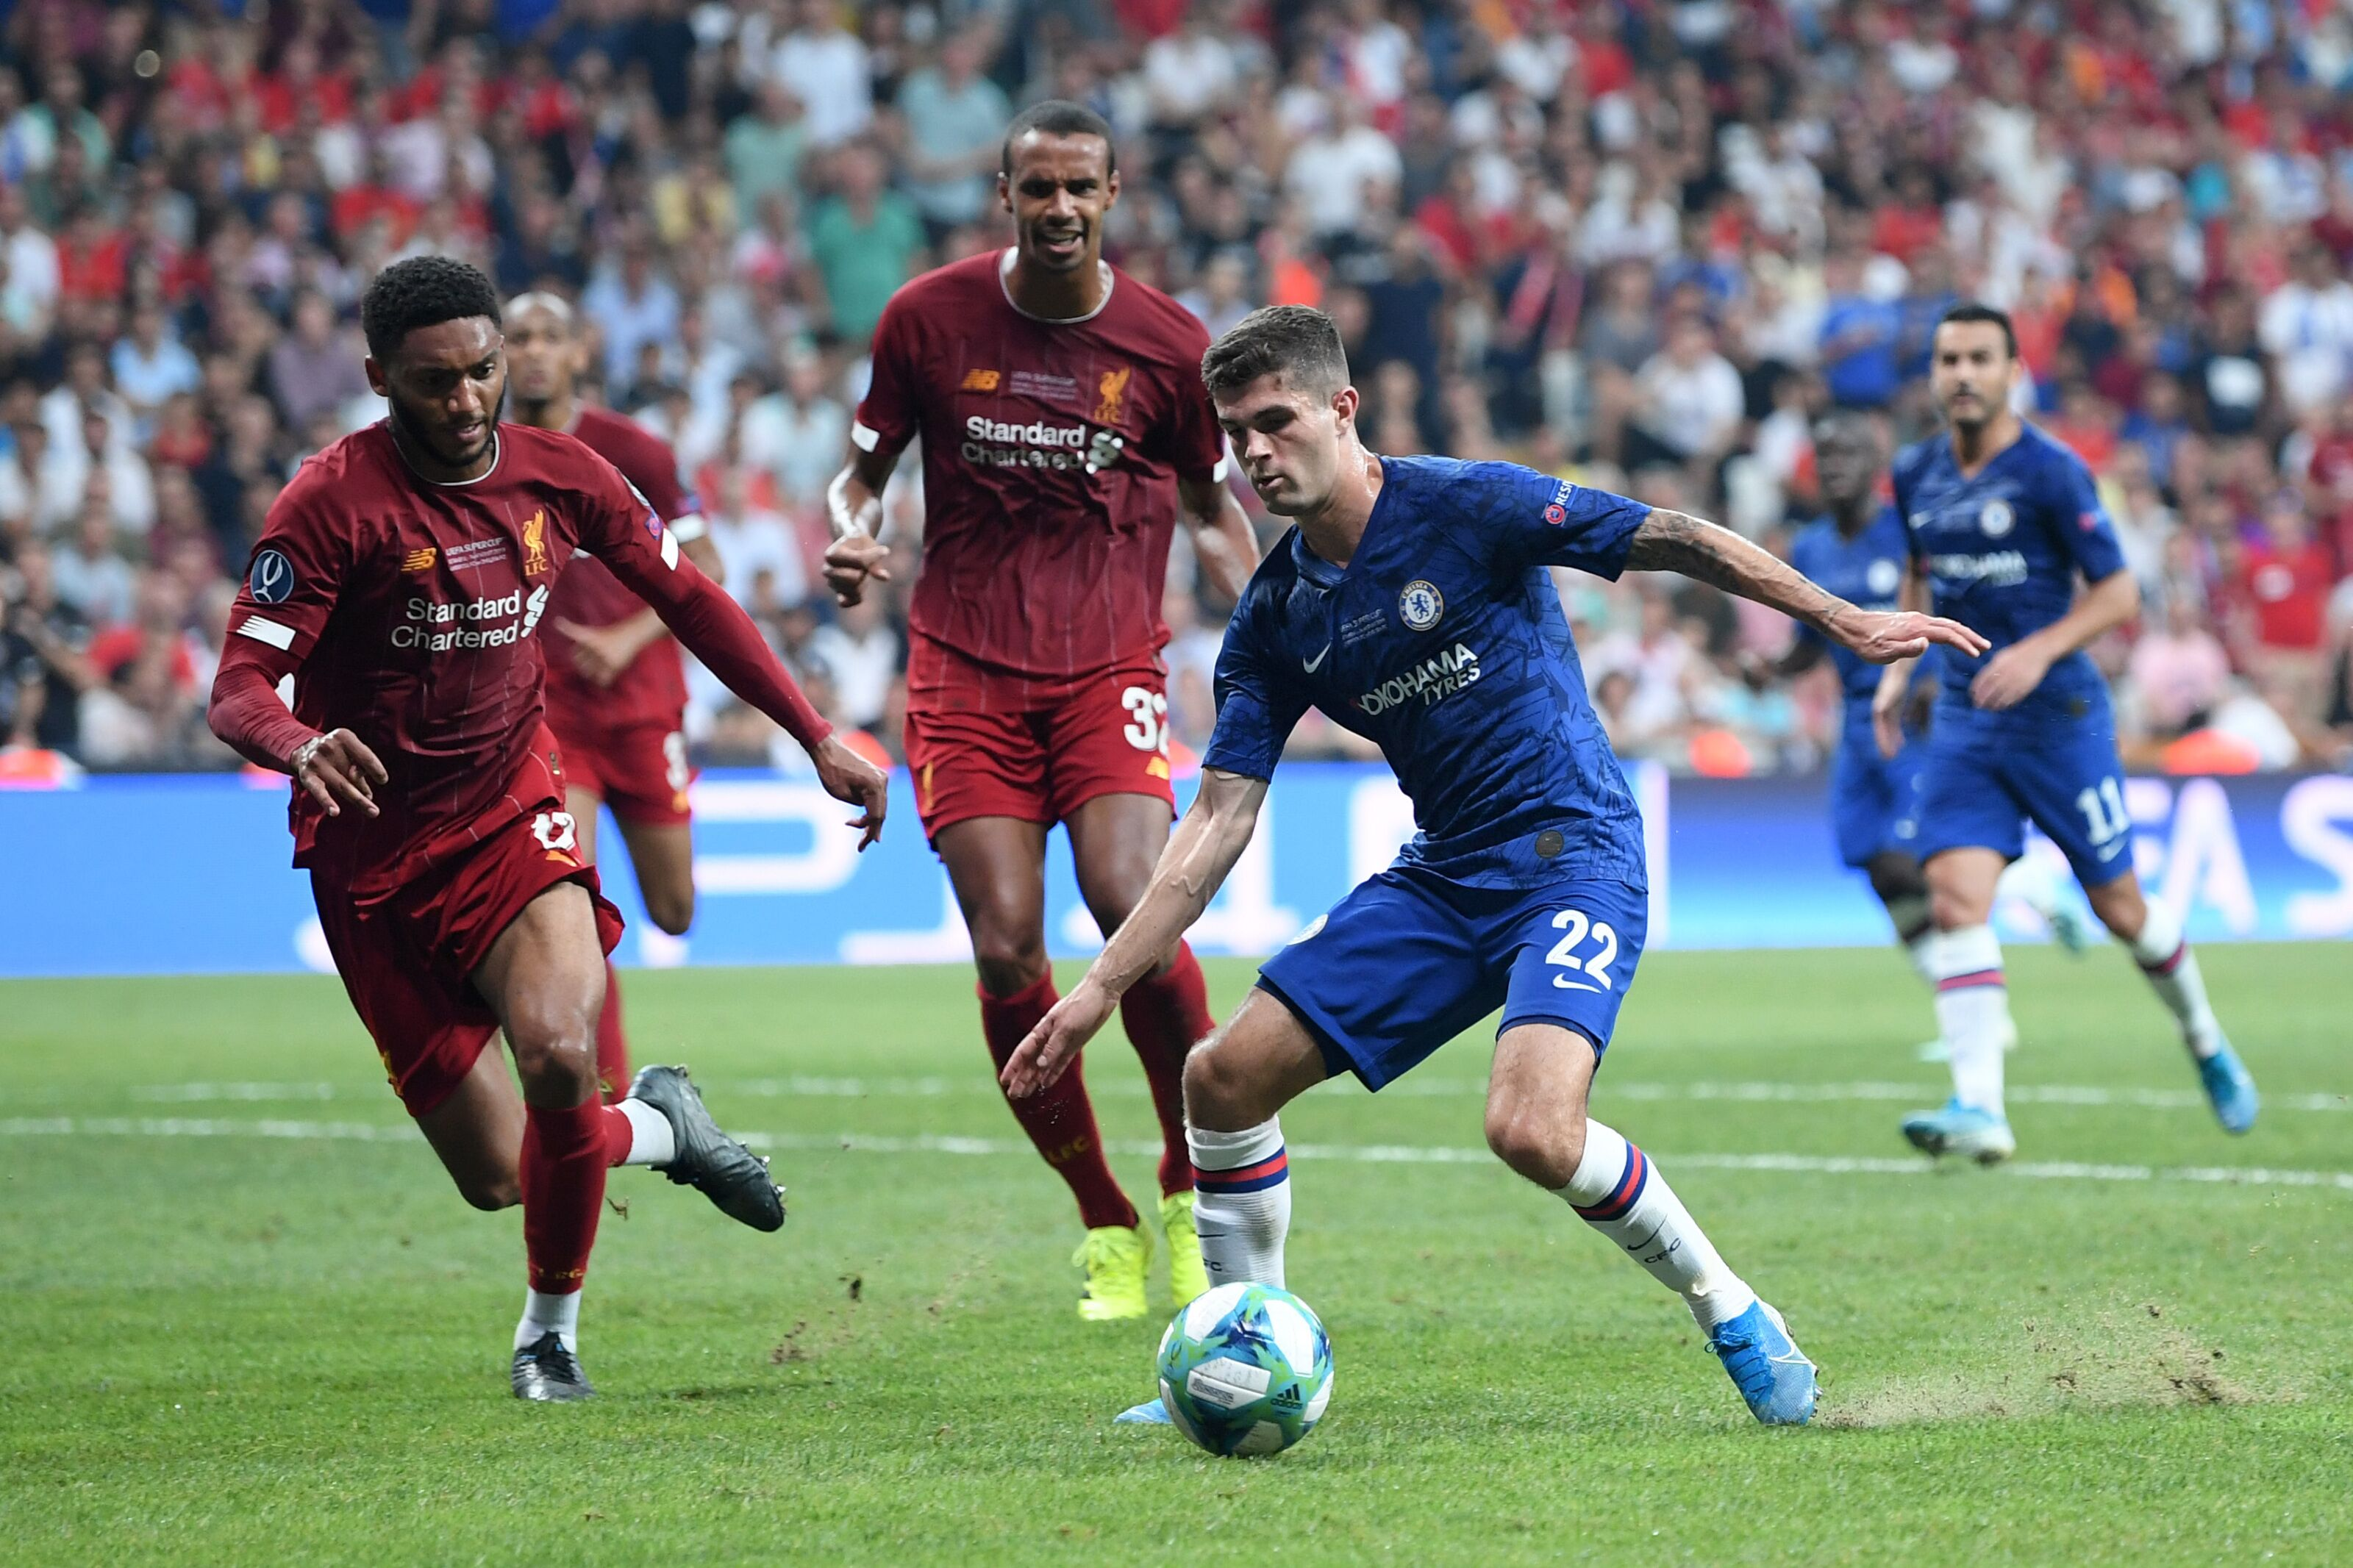 Liverpool vs Chelsea: 'Timid and frail' Blues star slammed before Liverpool clash